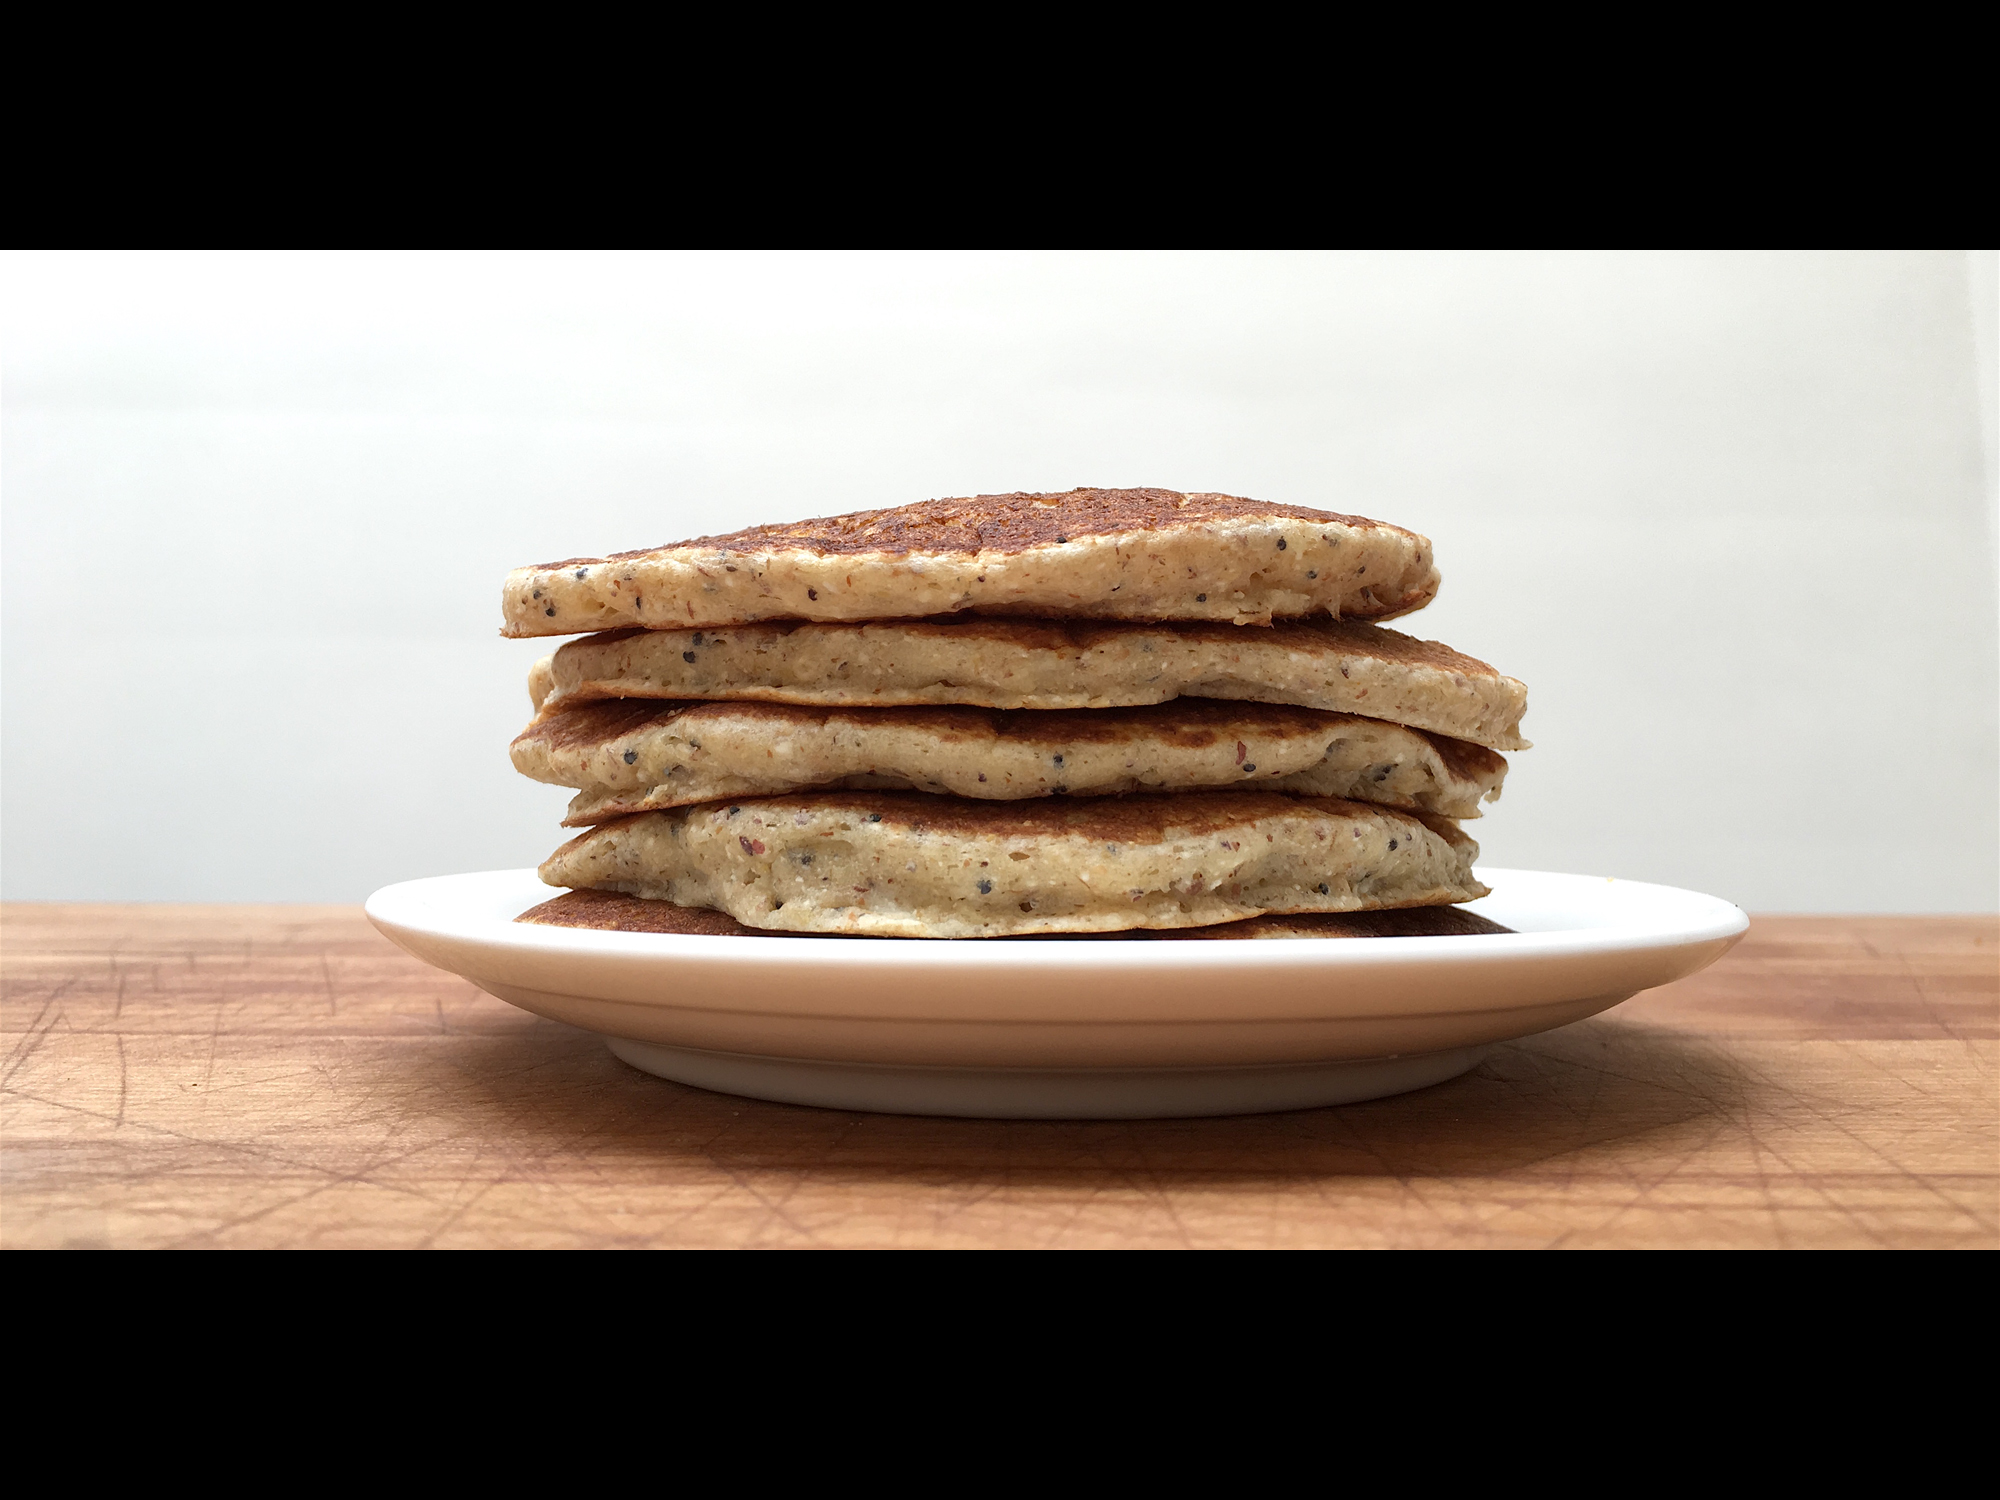 AN ACTOR'S LOVE FOR PANCAKES SPURS A LINE OF HERITAGE MIXES